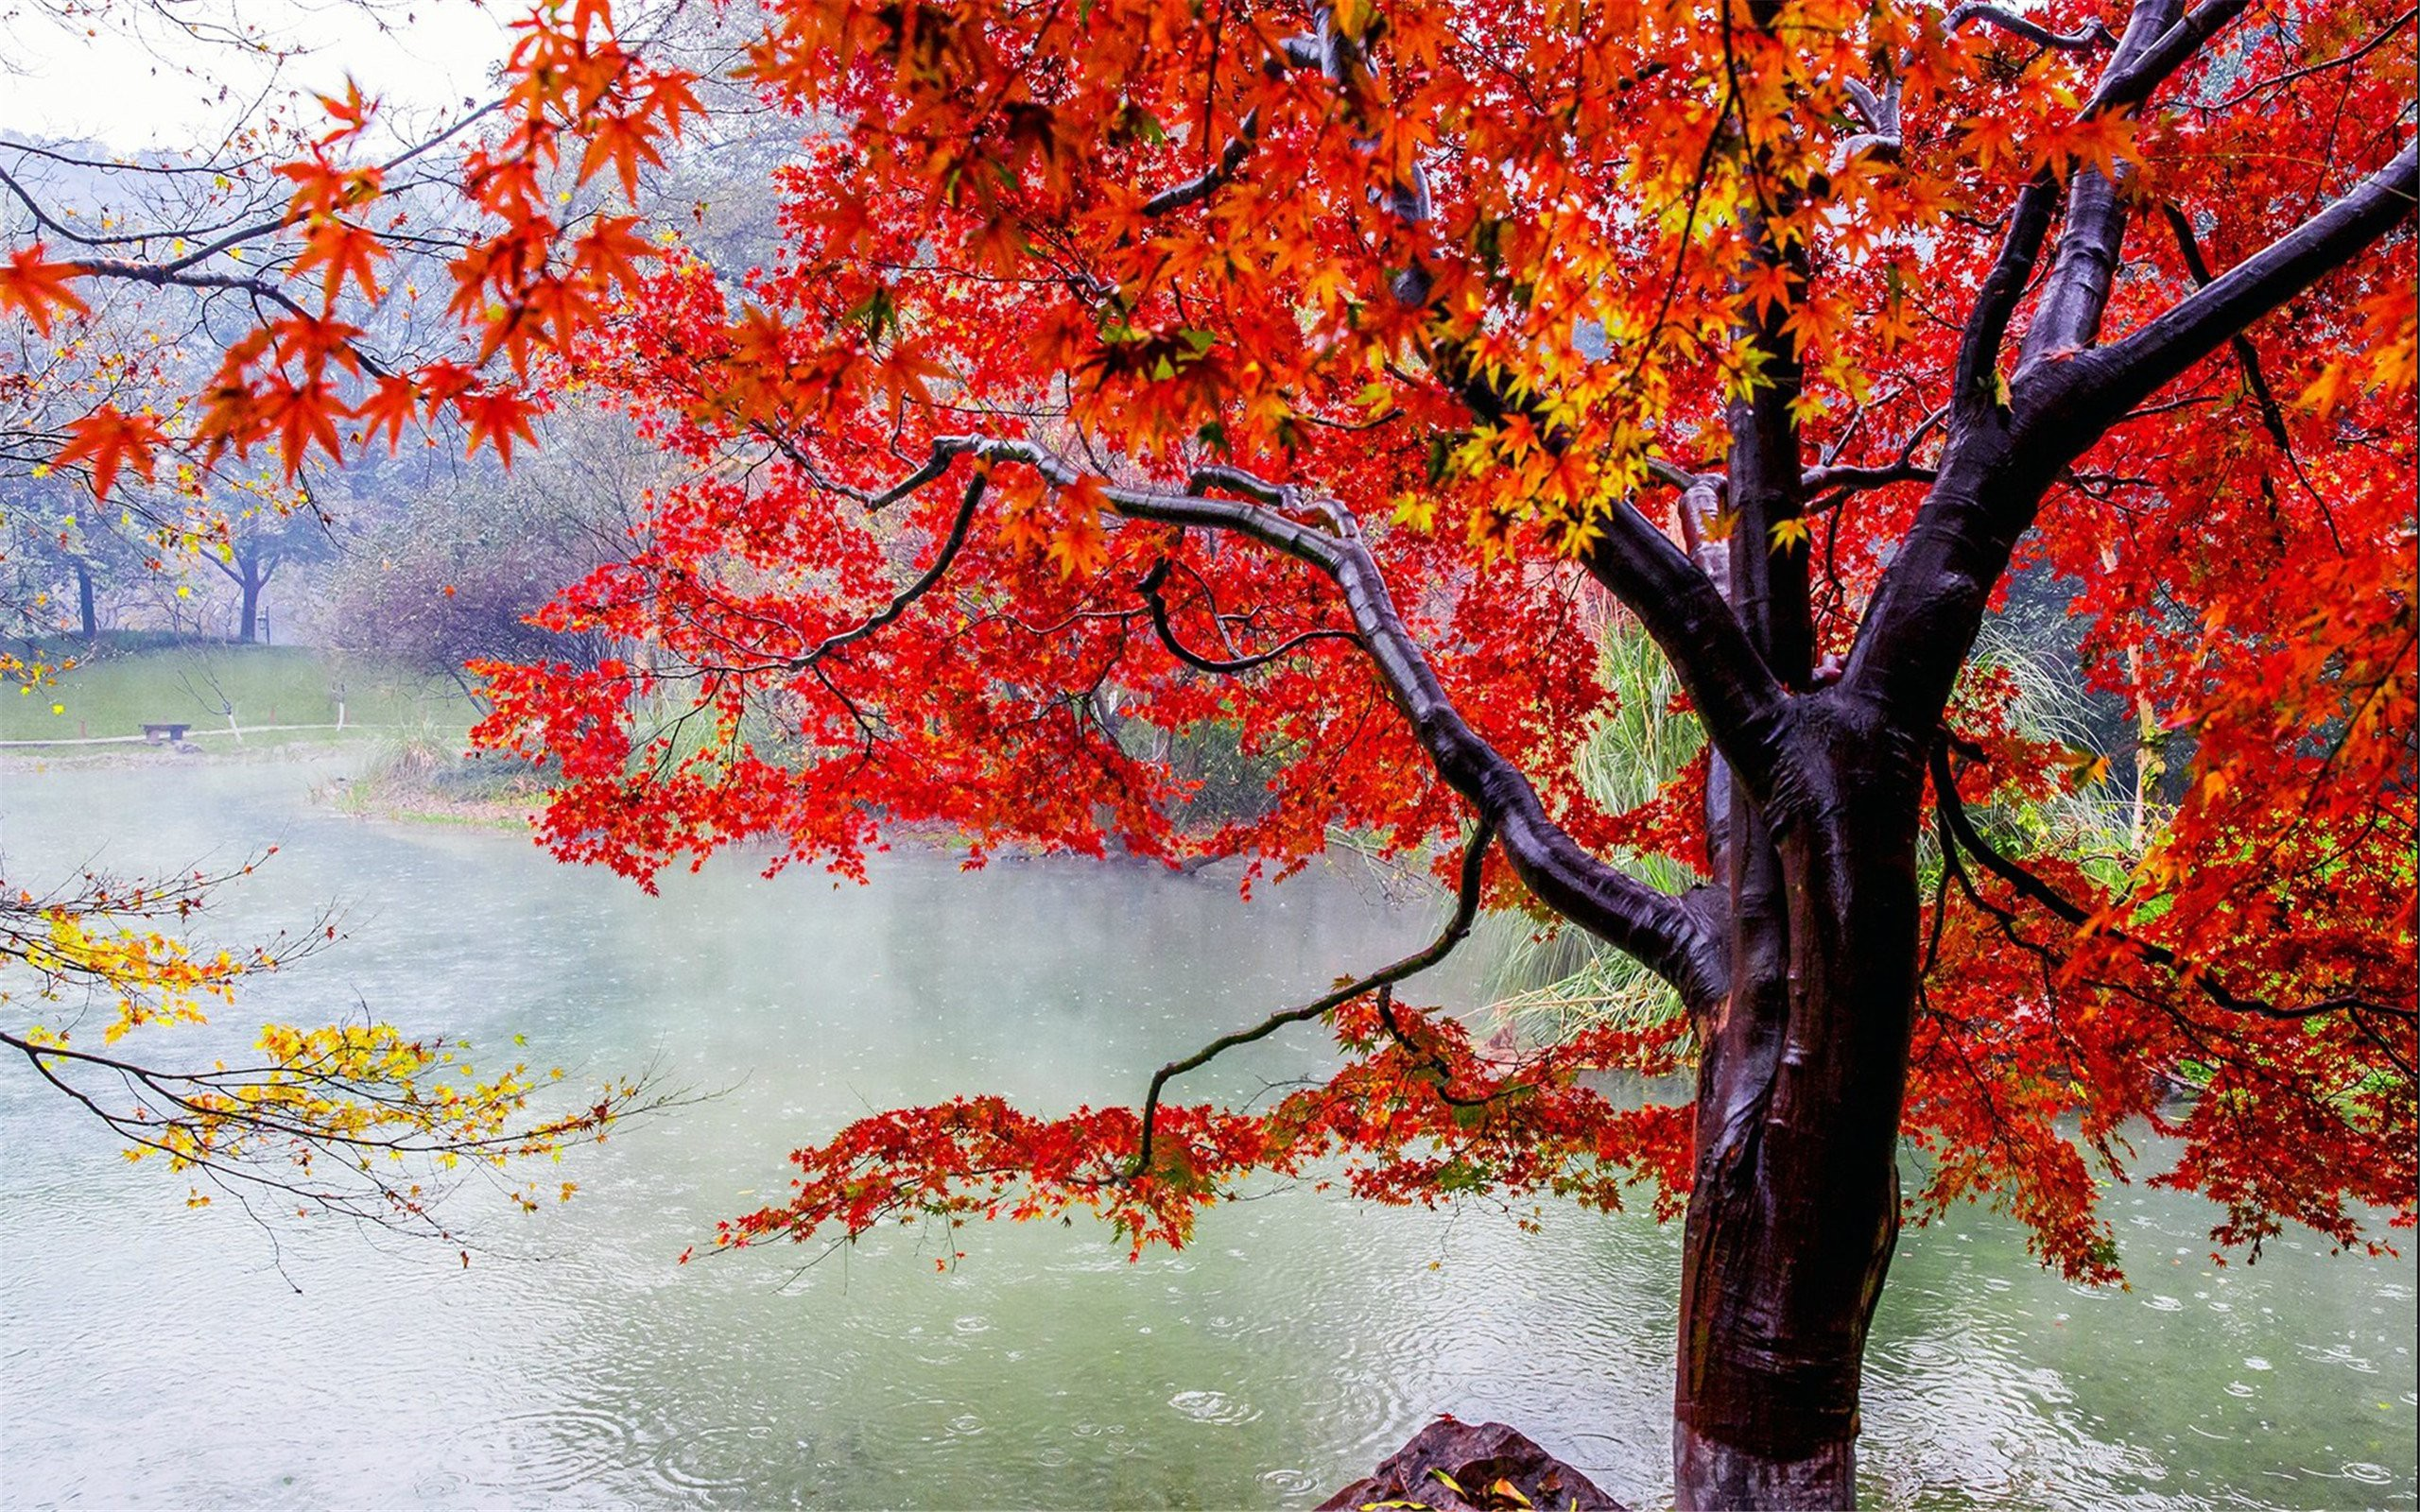 Fall Foliage Wallpaper Widescreen Autumn Tree On A Rainy Day Full Hd Wallpaper And